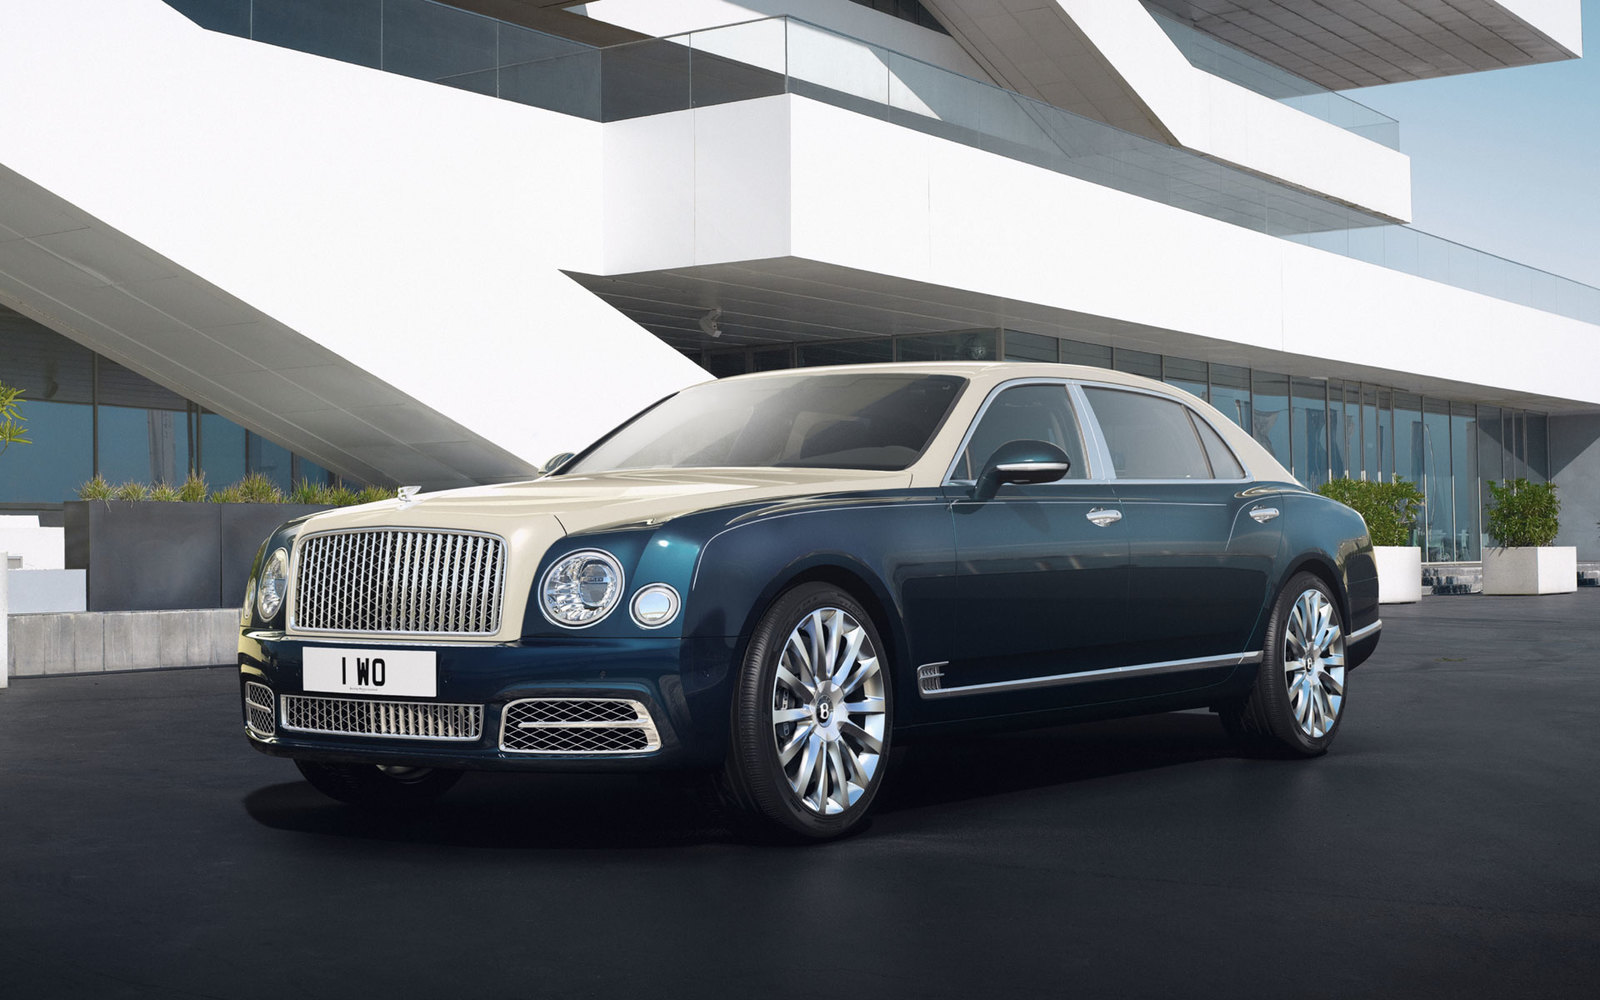 Bentley Mulsanne Hallmark Edition